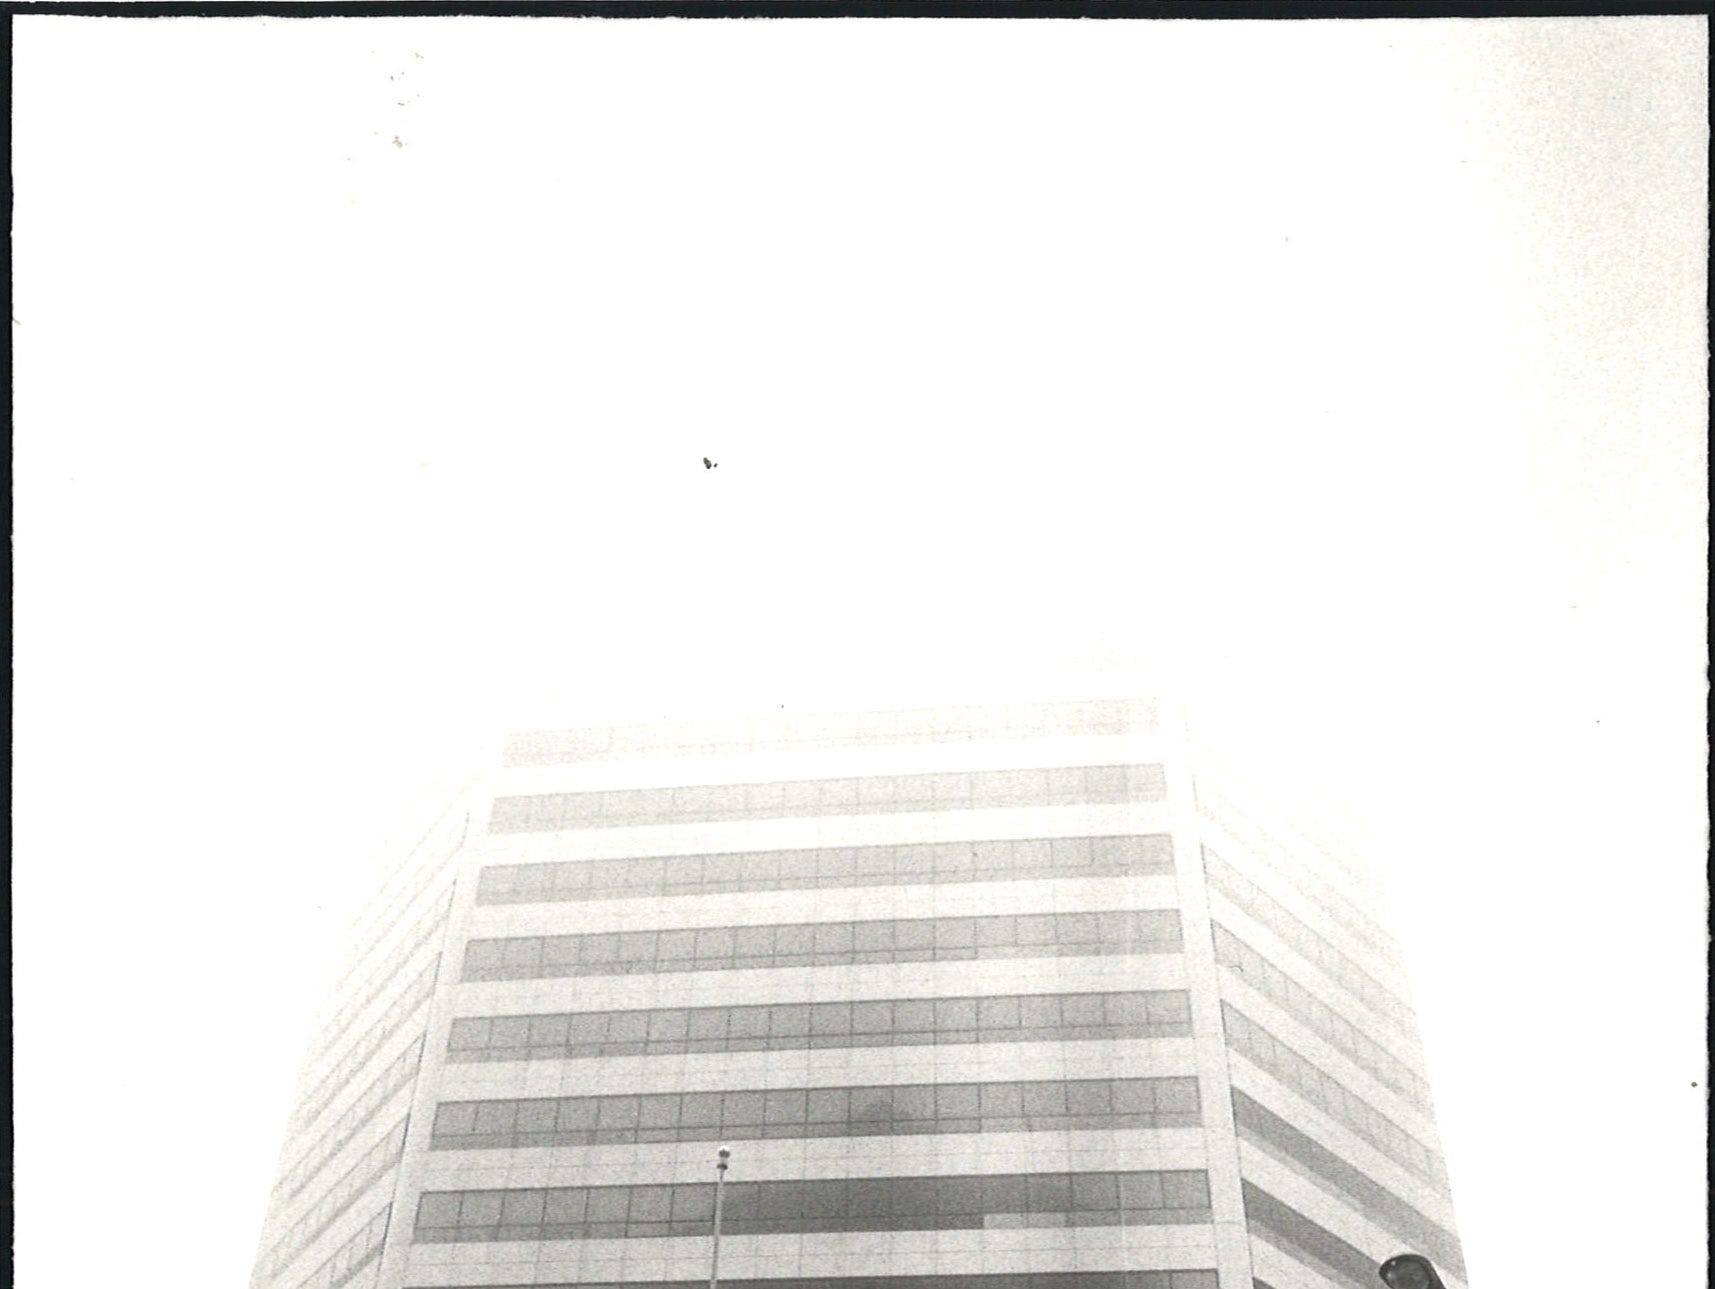 The upper stories of the Texas Commerce Plaza building in uptown Corpus Christi disappear into the fog on Jan. 8, 1984.